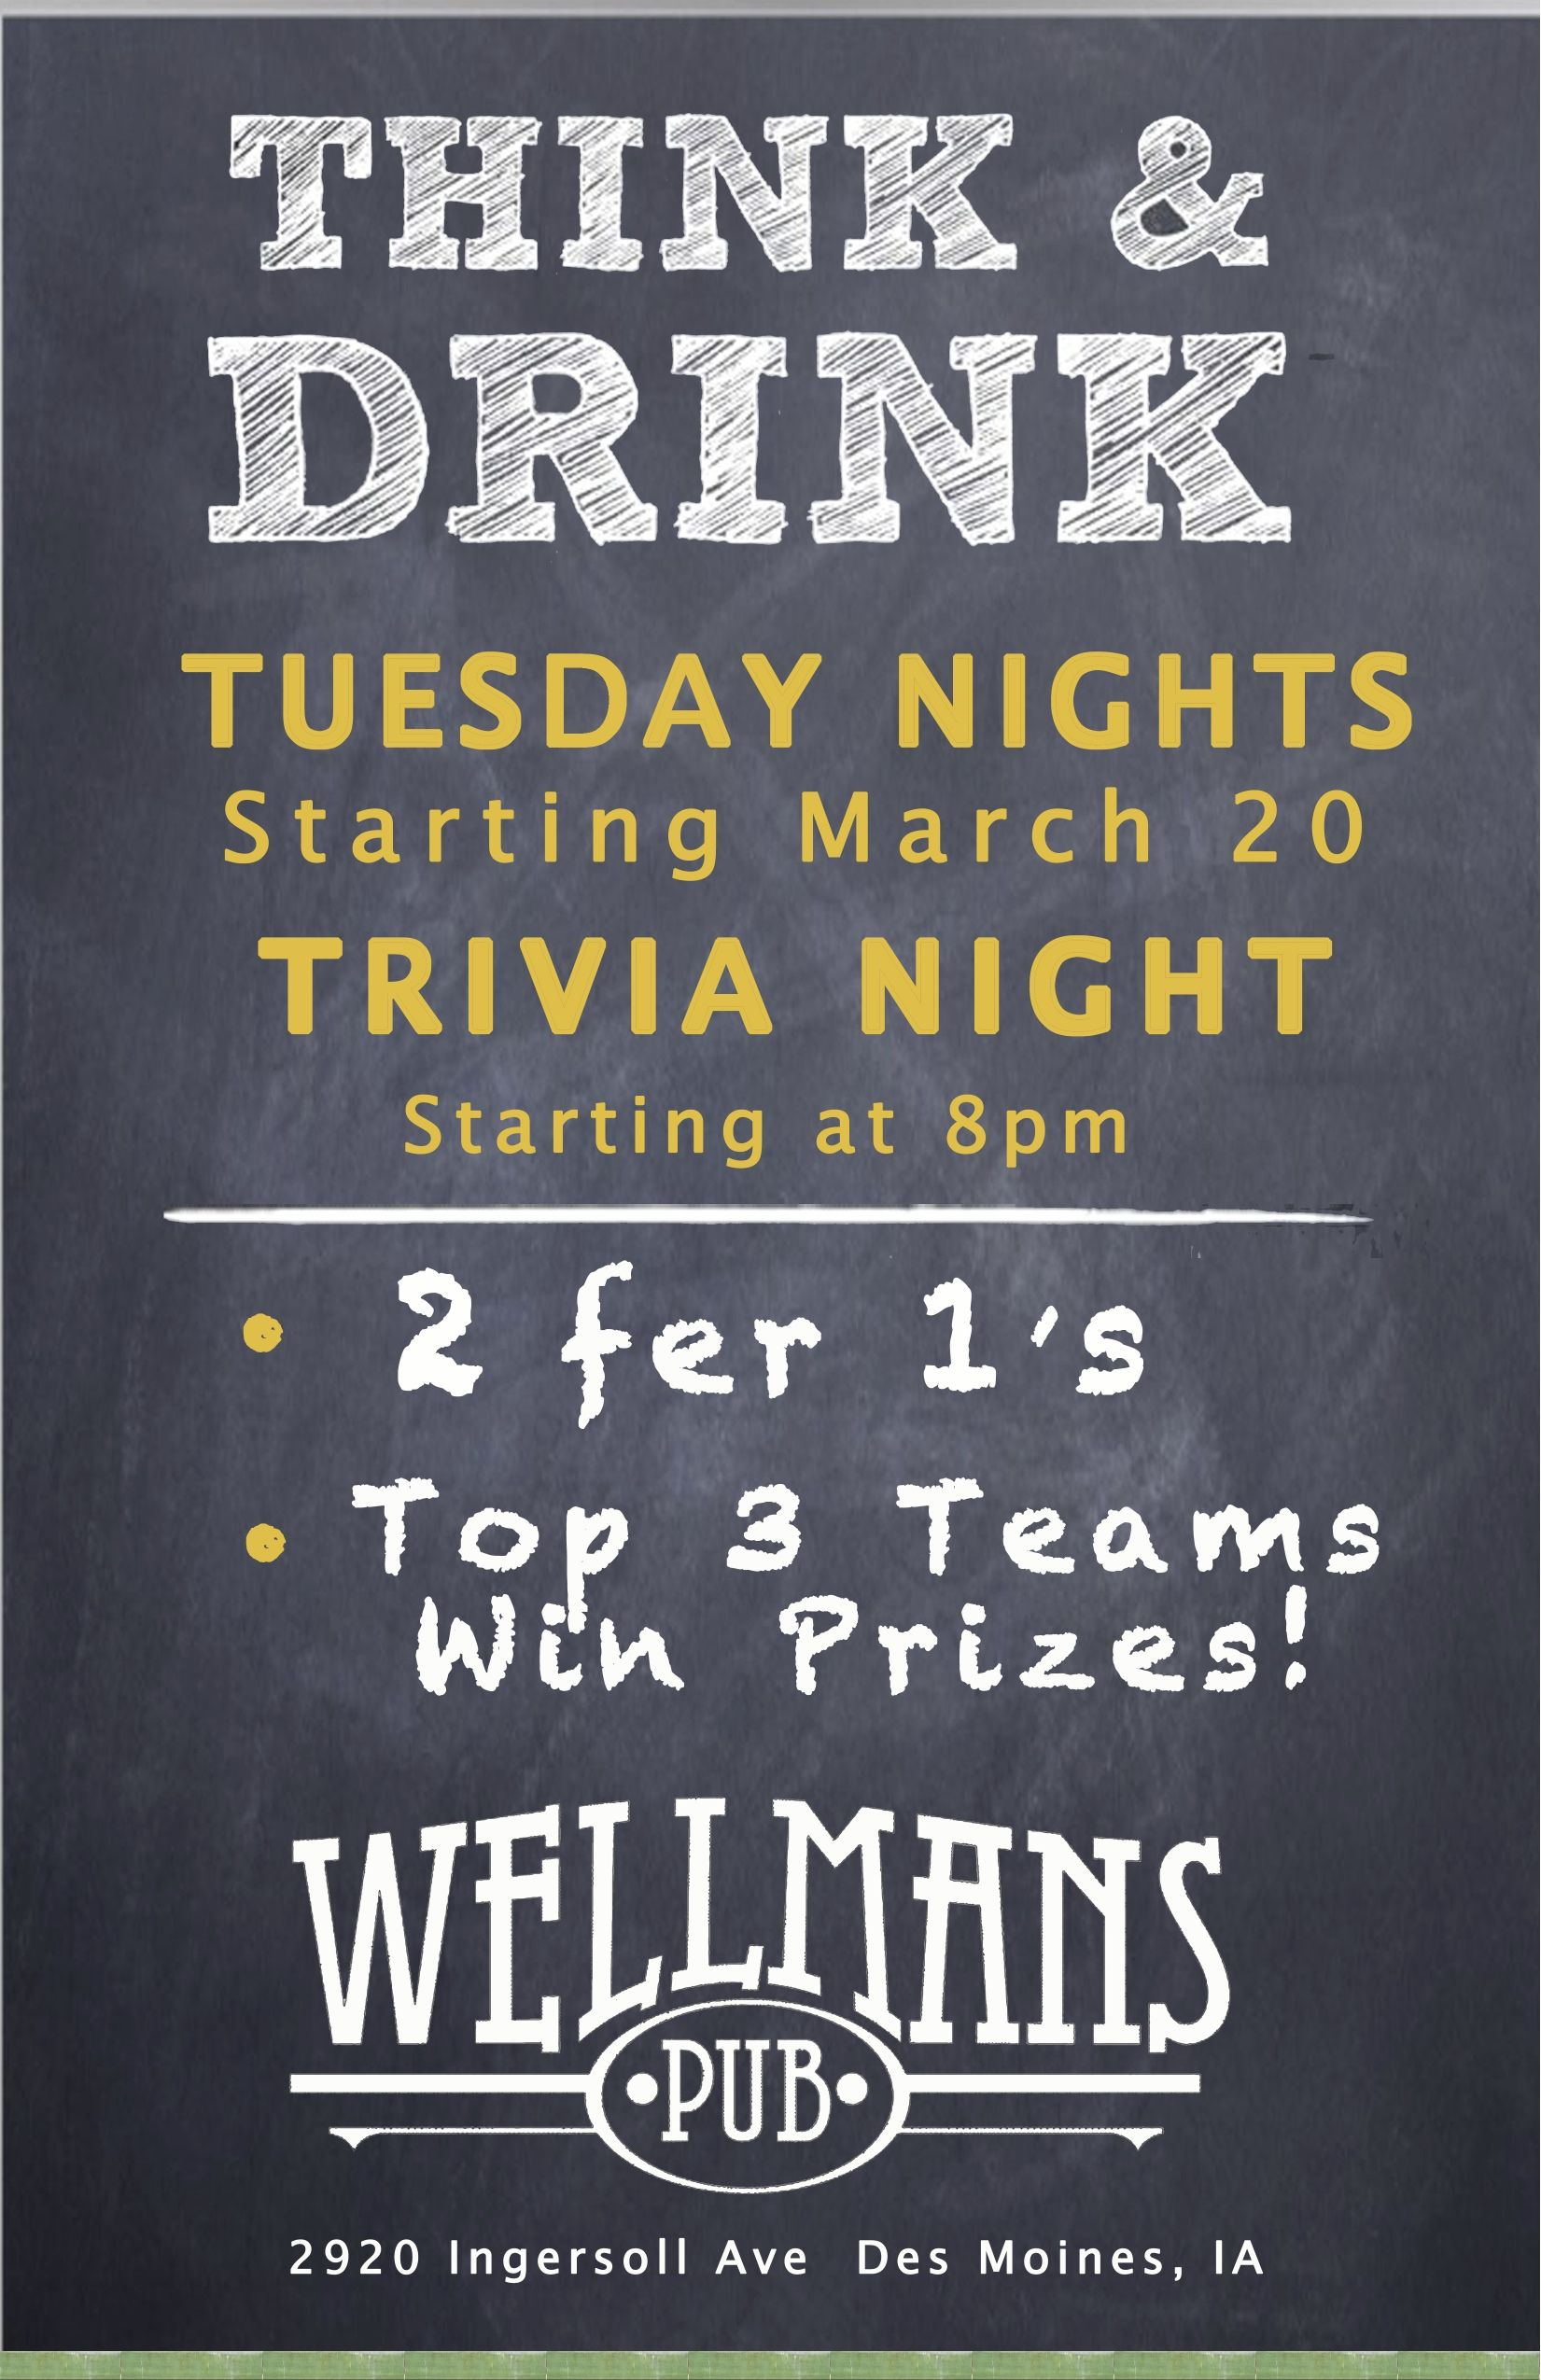 Tuesday night trivia at Wellman\'s - 8 pm sharp! | Trivia Night ...